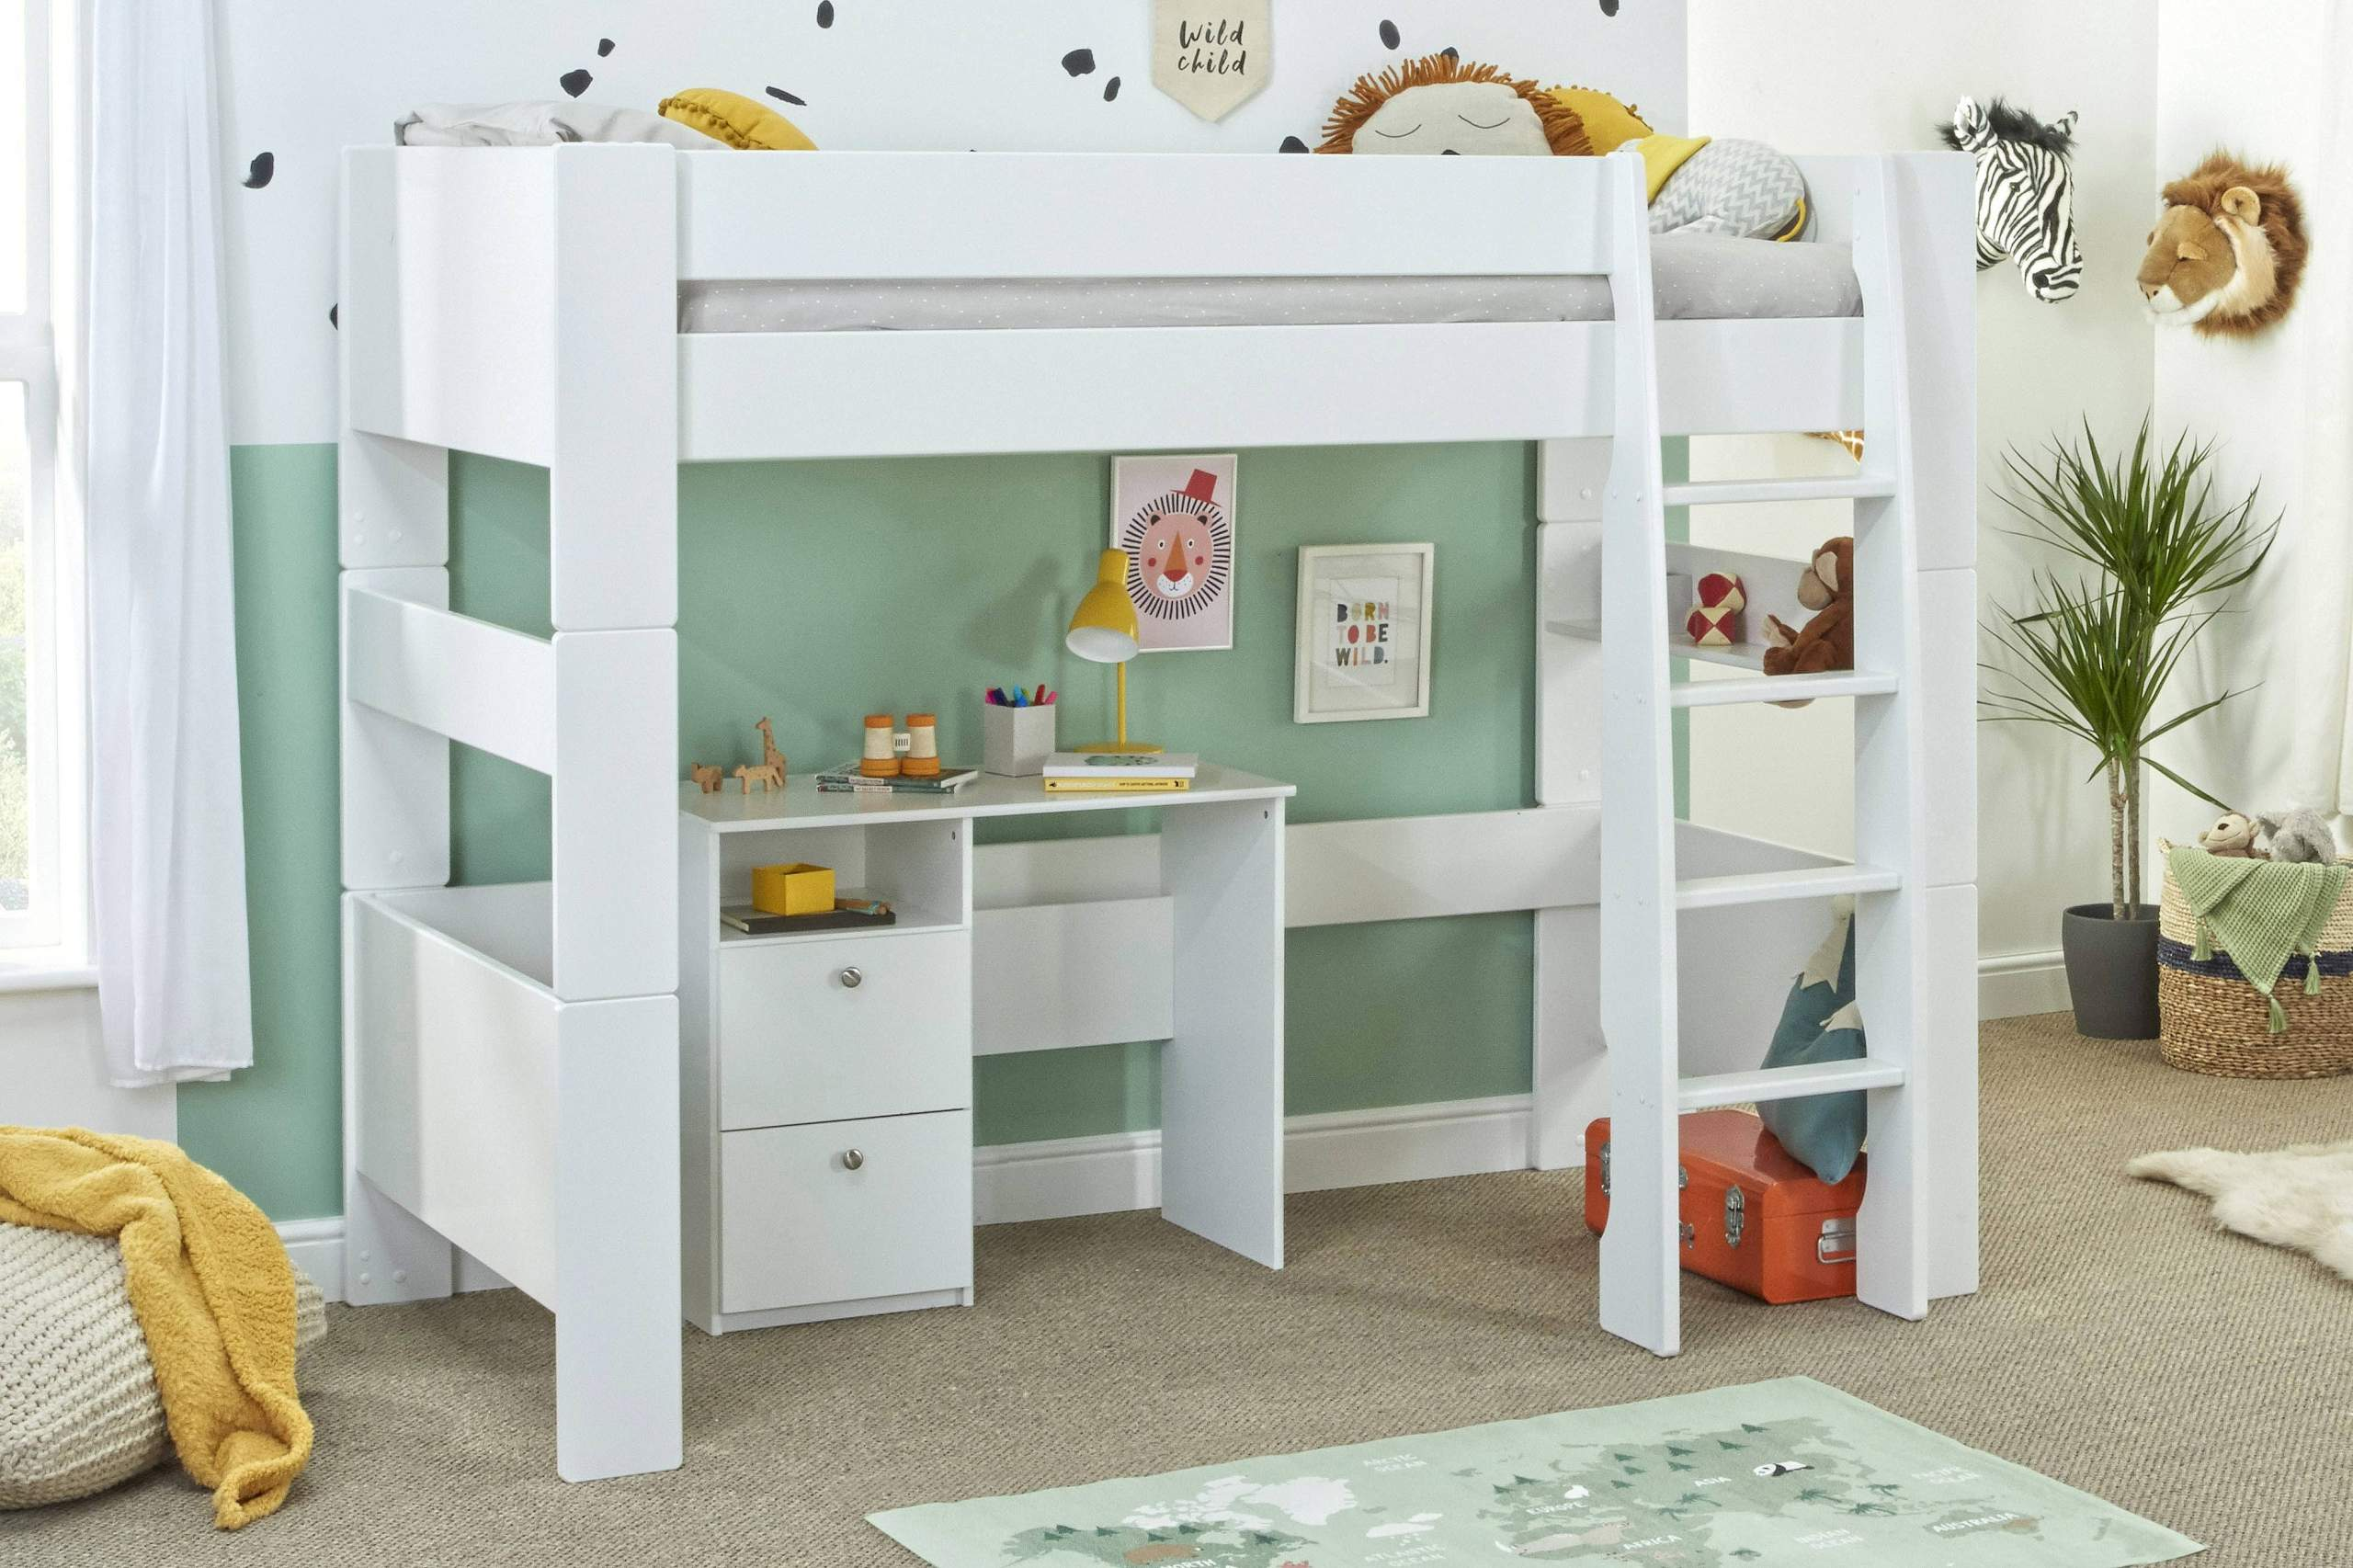 Bloc High sleeper with desk - no chair